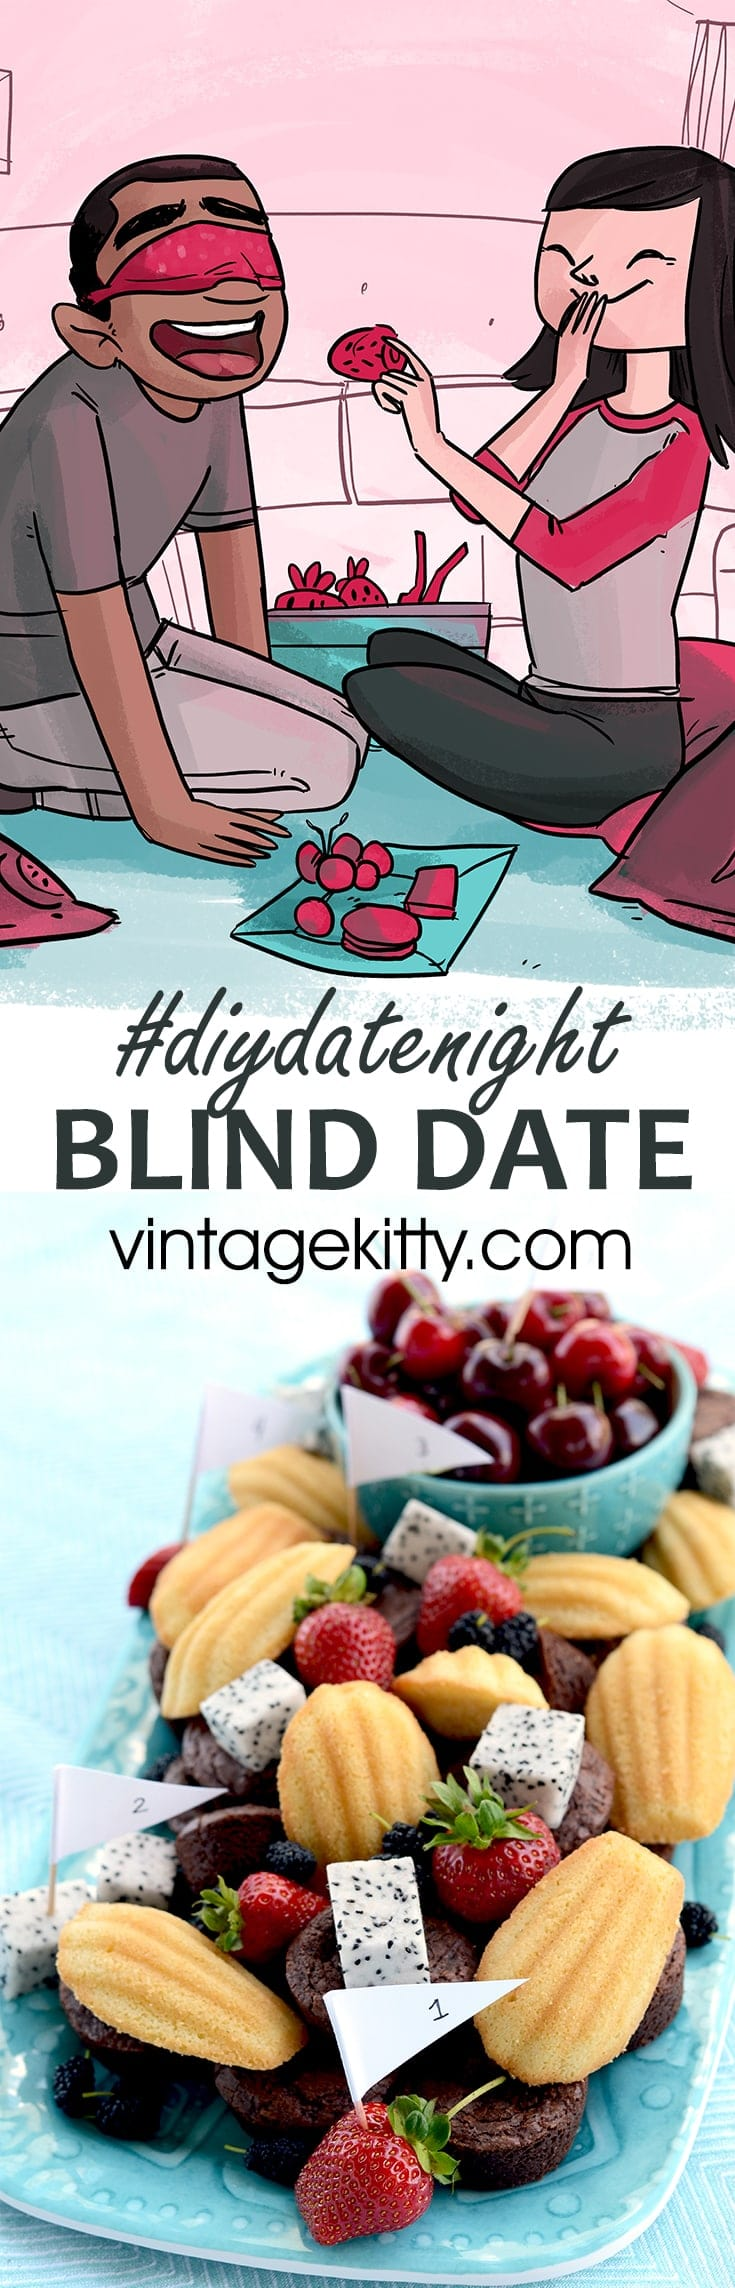 Blind Date Pin - Blind Date #diydatenight